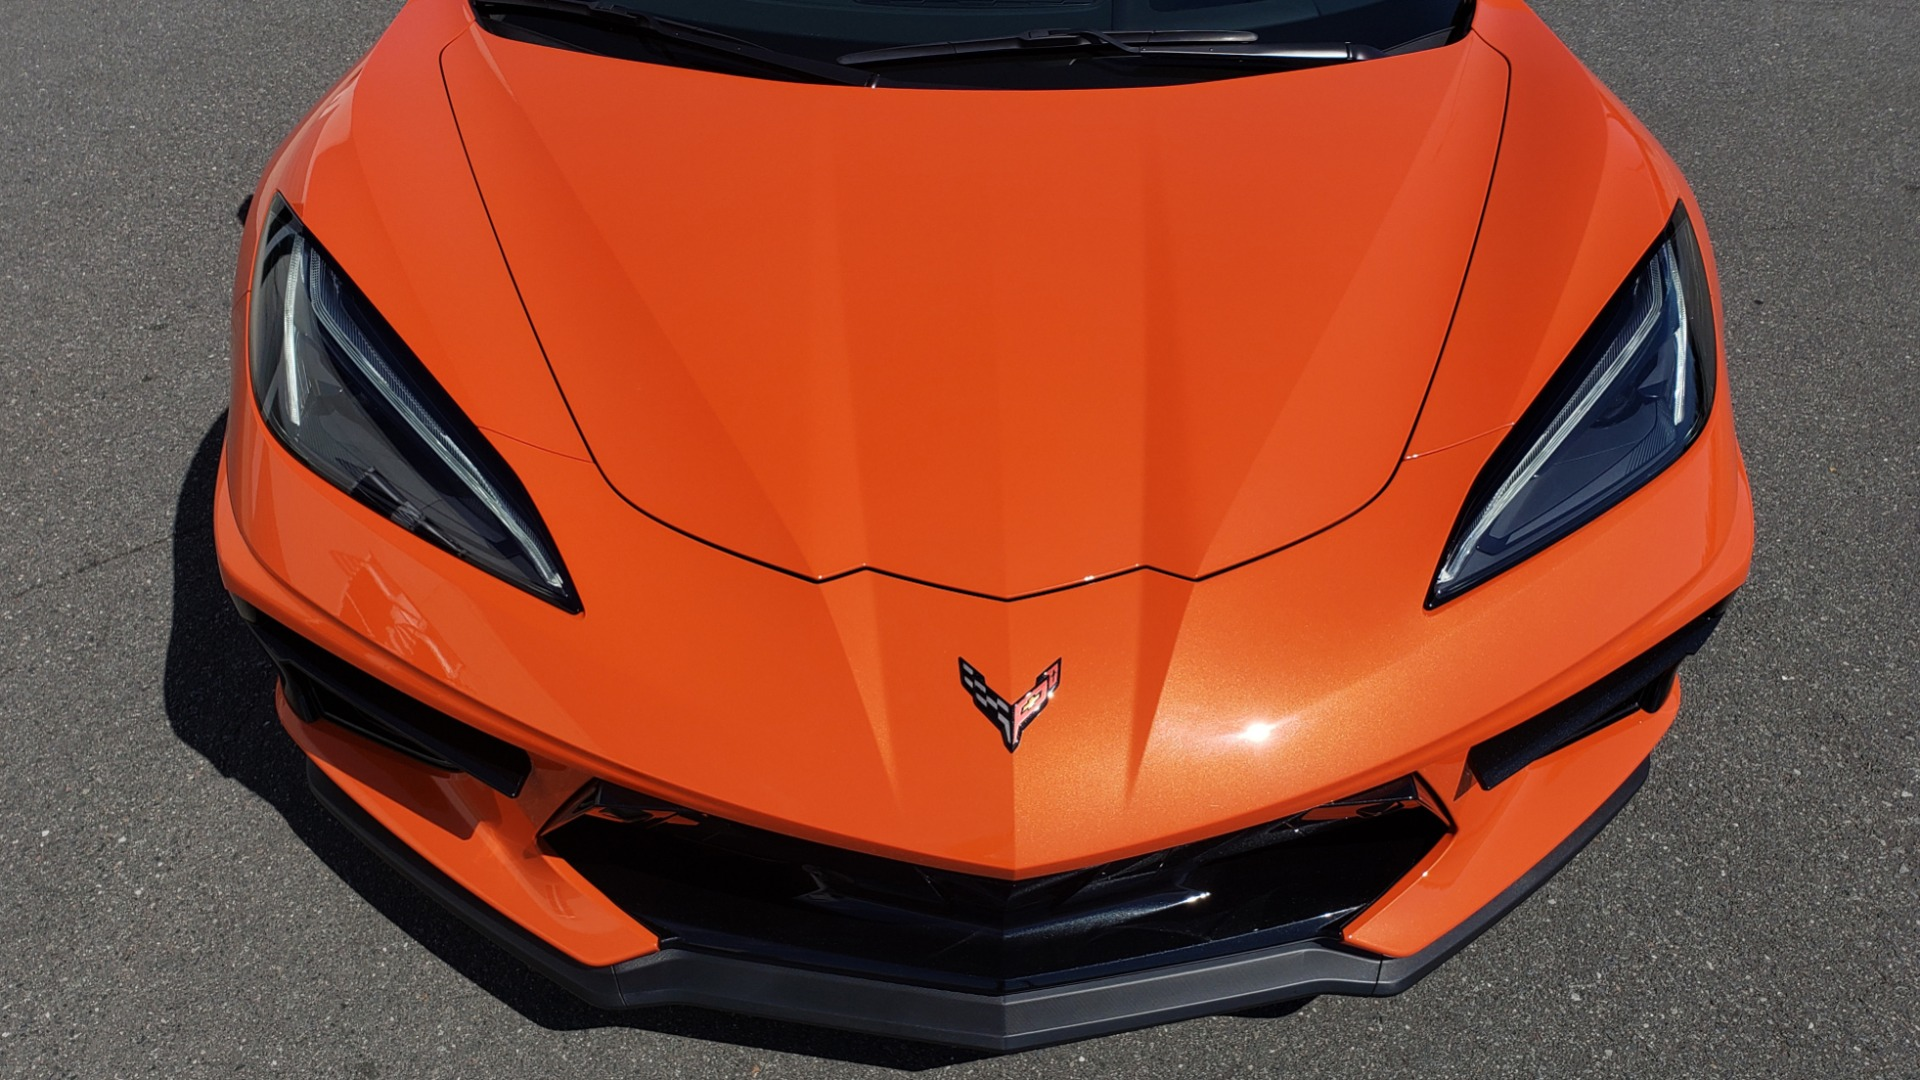 Used 2020 Chevrolet CORVETTE C8 STINGRAY 3LT COUPE / NAV / BOSE / CAMERA / LIKE NEW for sale Sold at Formula Imports in Charlotte NC 28227 36